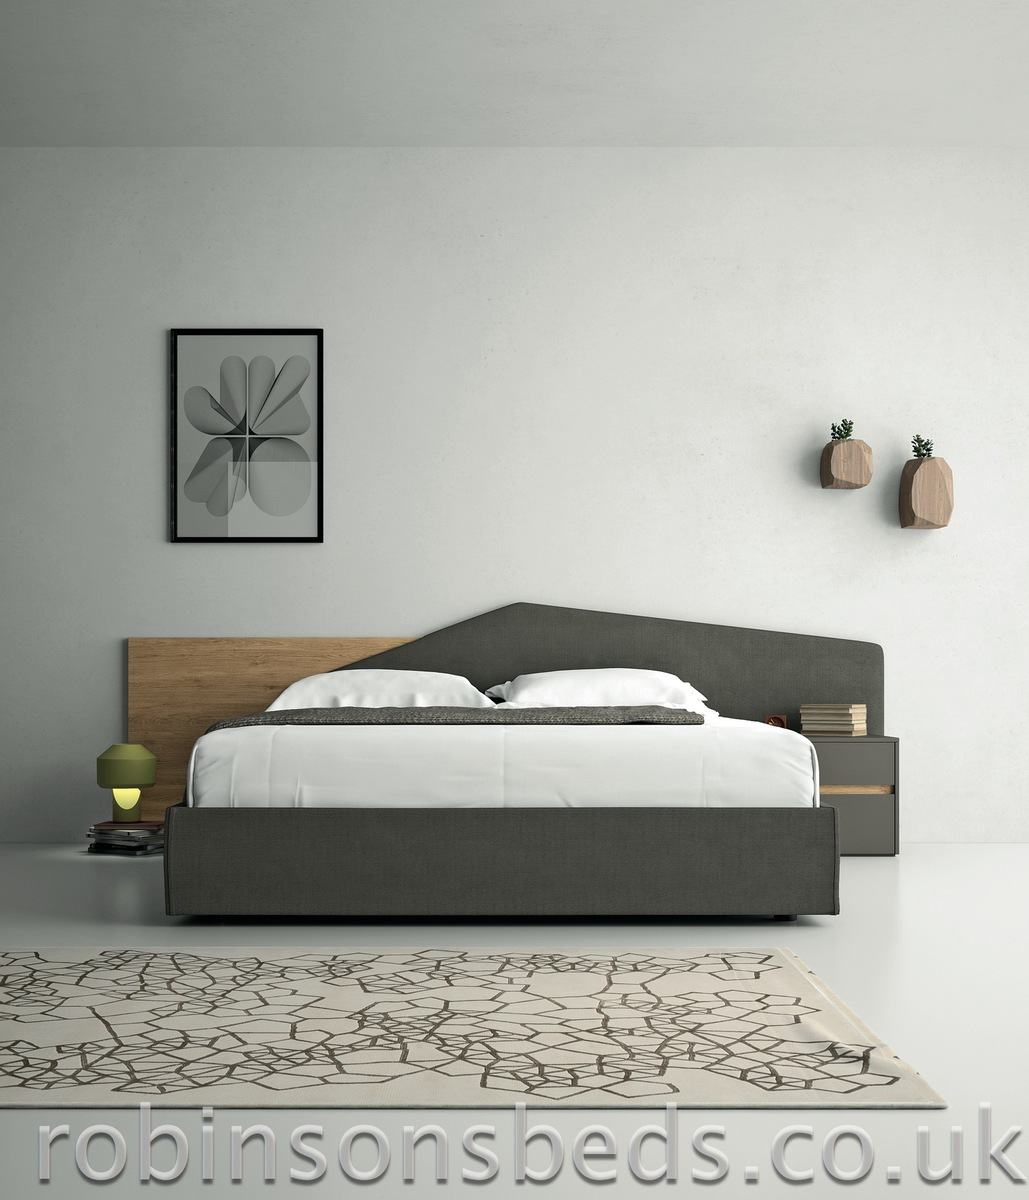 Dall Agnese Bedrooms With Style Modern Bedroom Furniture Designs